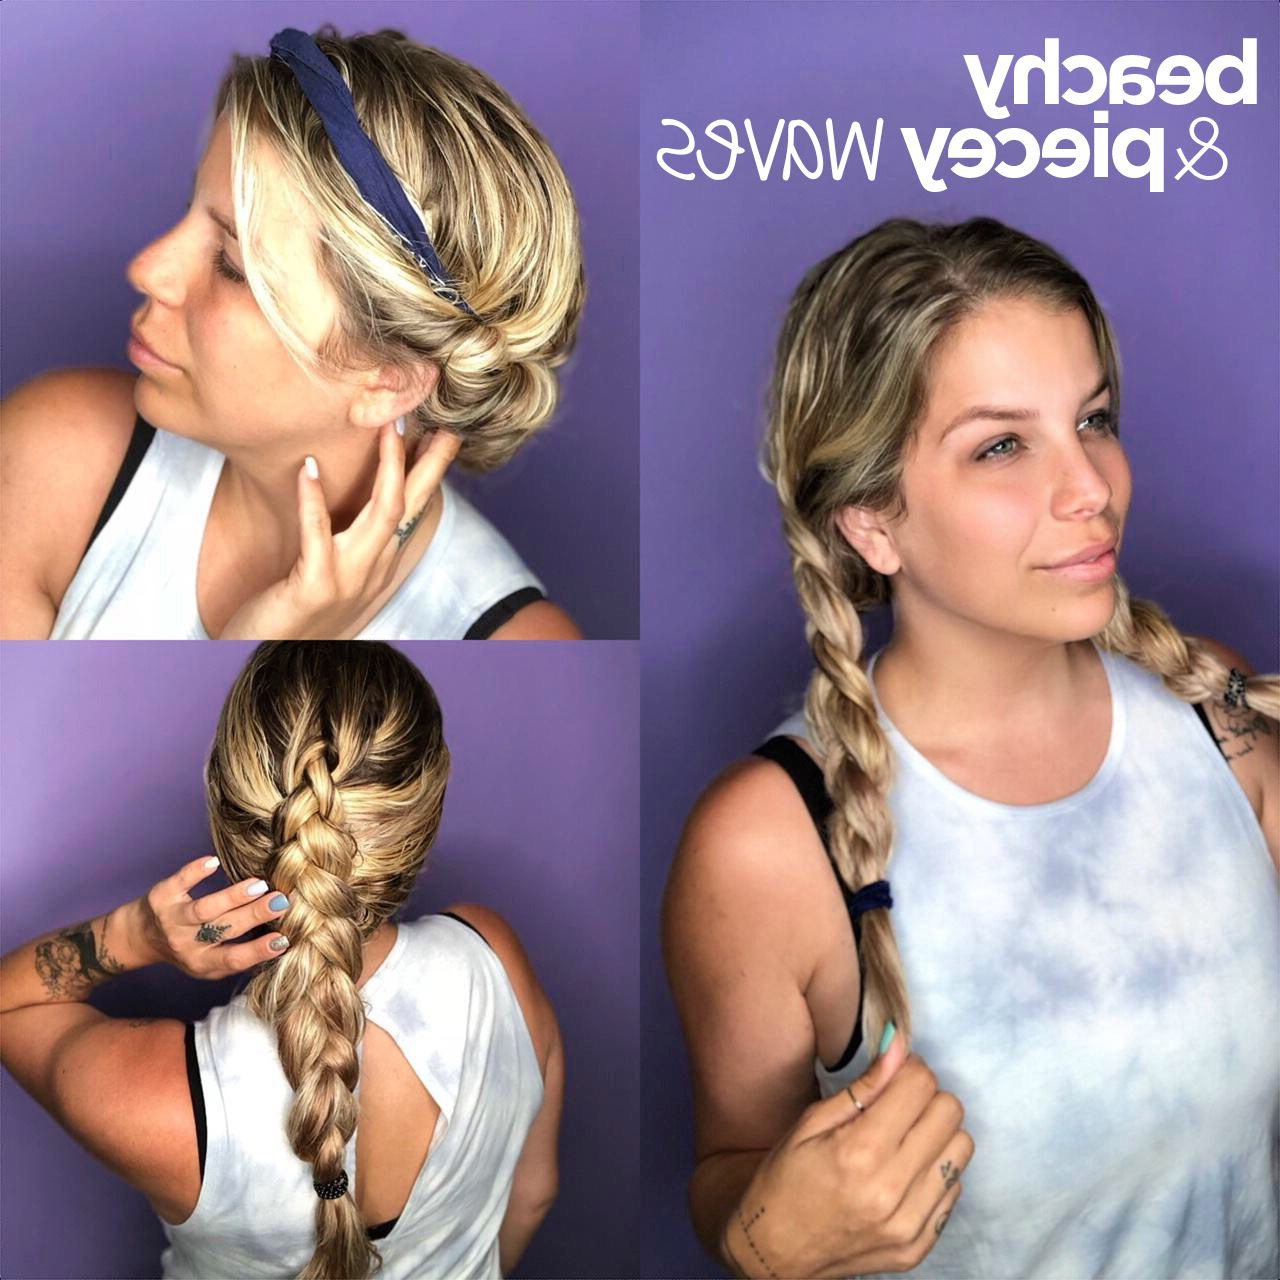 2017 Ride The Wave Mohawk Hairstyles In Ride The Waveheat Free Beachy Waves For The Win! Find Your (View 1 of 20)